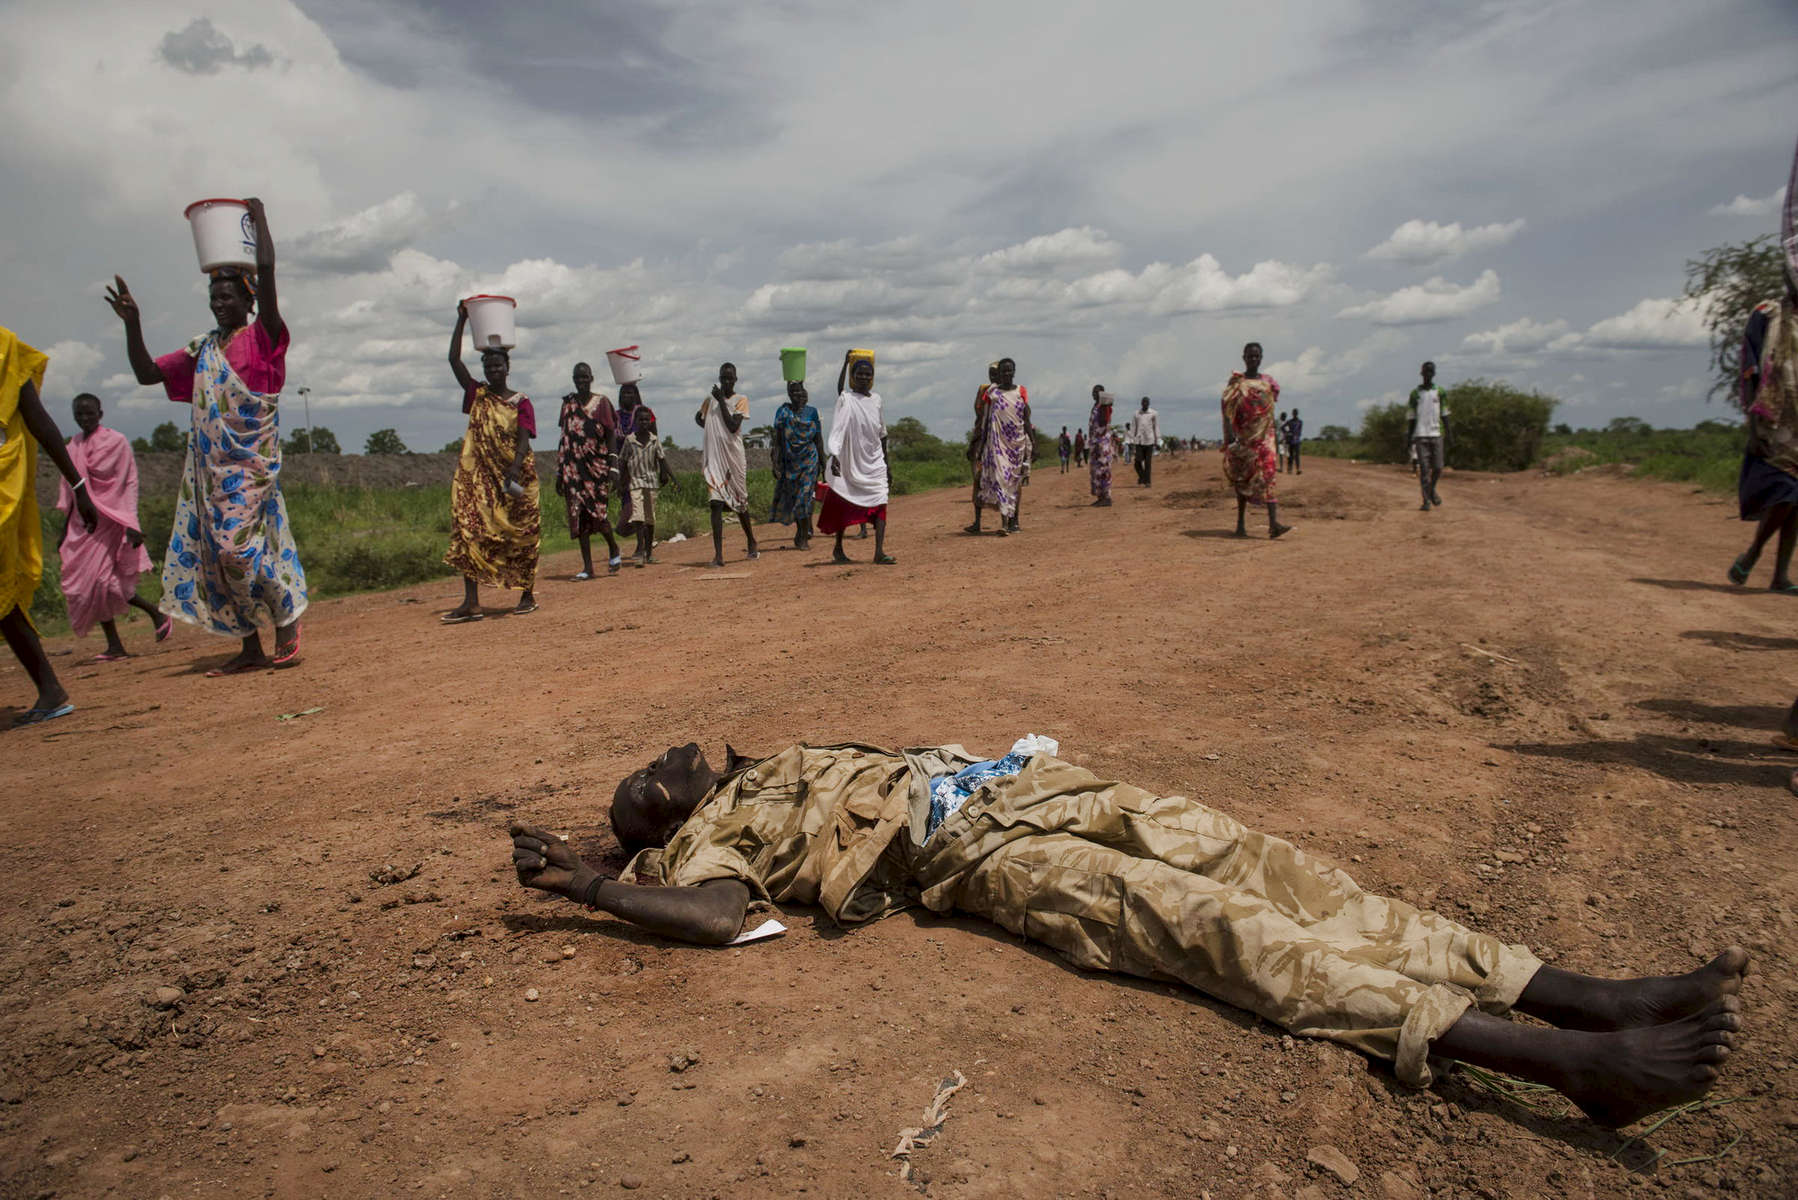 A dead government soldier with the Sudanese People's Liberation Army lies in the road in front of the base of the United Nations Mission in South Sudan as civilians pass by with water and food they collected from town during a lull in fighting between government and opposition forces in Bentiu, South Sudan, May 4, 2014.  Bentiu has changed hands between government and opposition control several times since the civil war began in December, and has been the scene of ethnic massacres where hundreds, if not thousands, have been killed in the past months, pushing over 20,000 into a camp for displaced inside the UNMISS camp outside the town.  One million Southern Sudanese have been displaced from their homes as the civil war rages in the country, pitting ethnic Nu'er against Dinka.  (Credit: Lynsey Addario)